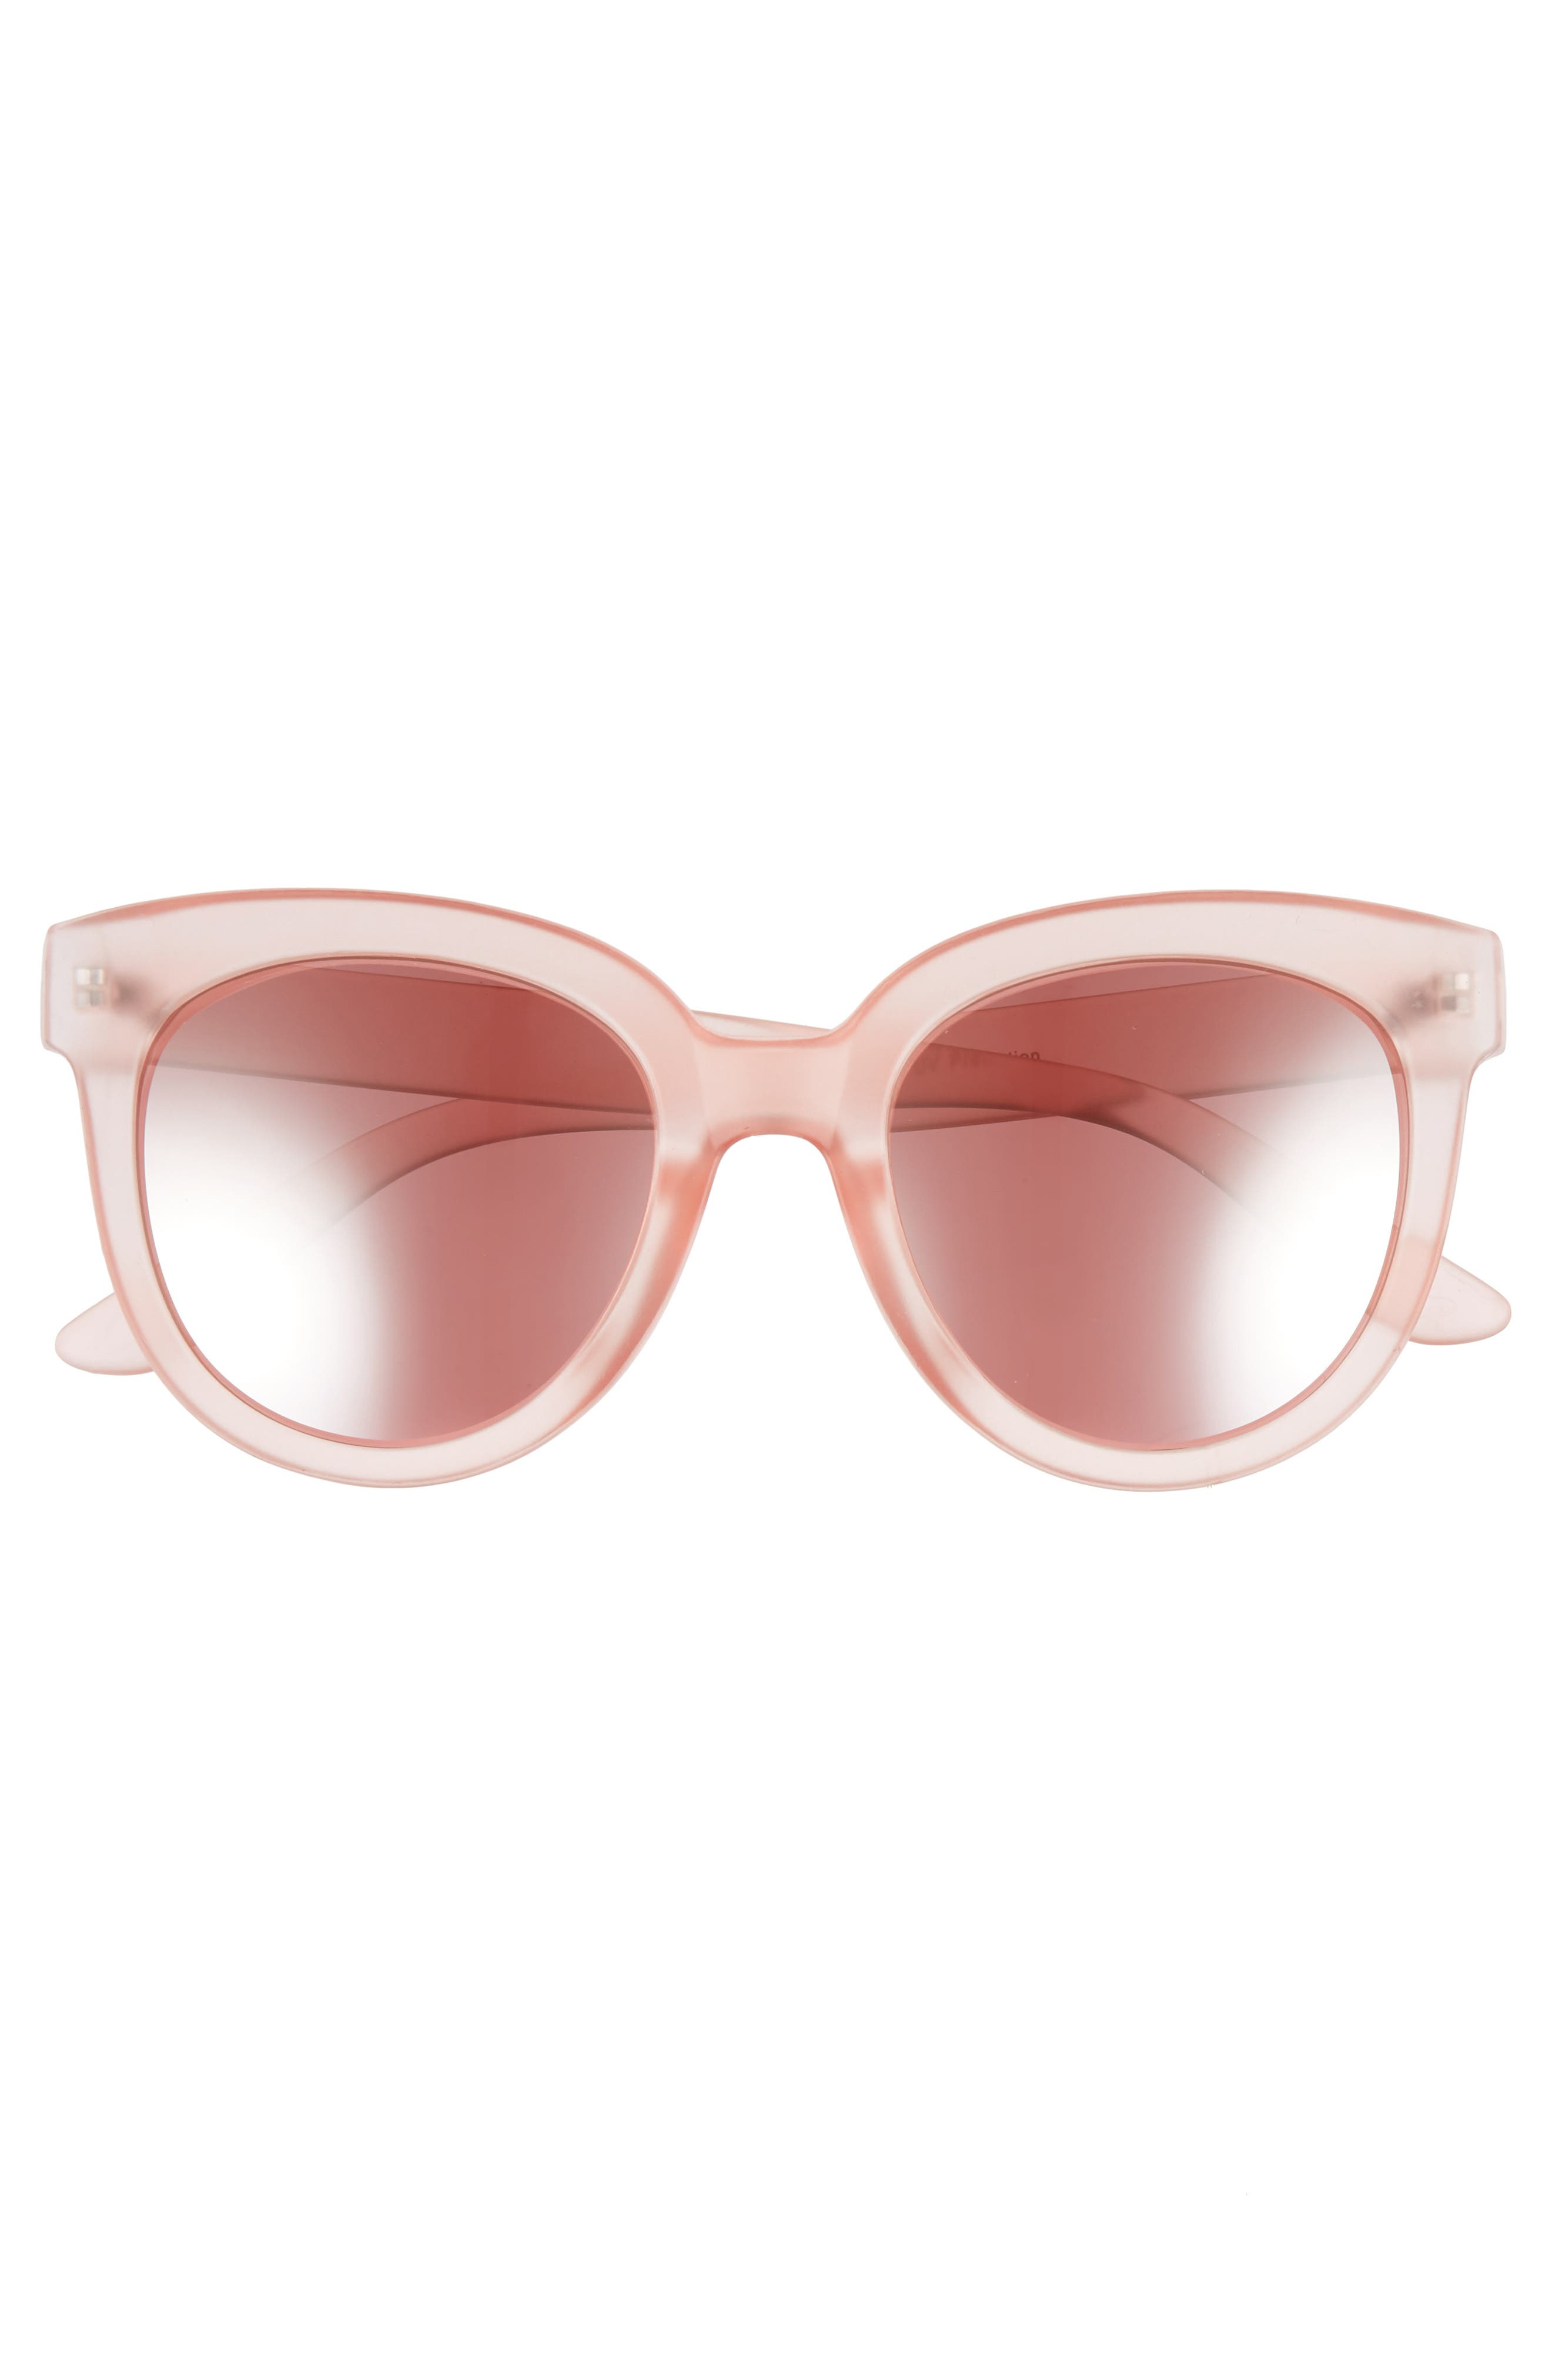 53mm Frosted Cat Eye Sunglasses,                             Alternate thumbnail 3, color,                             MILKY PINK/ ROSE GOLD